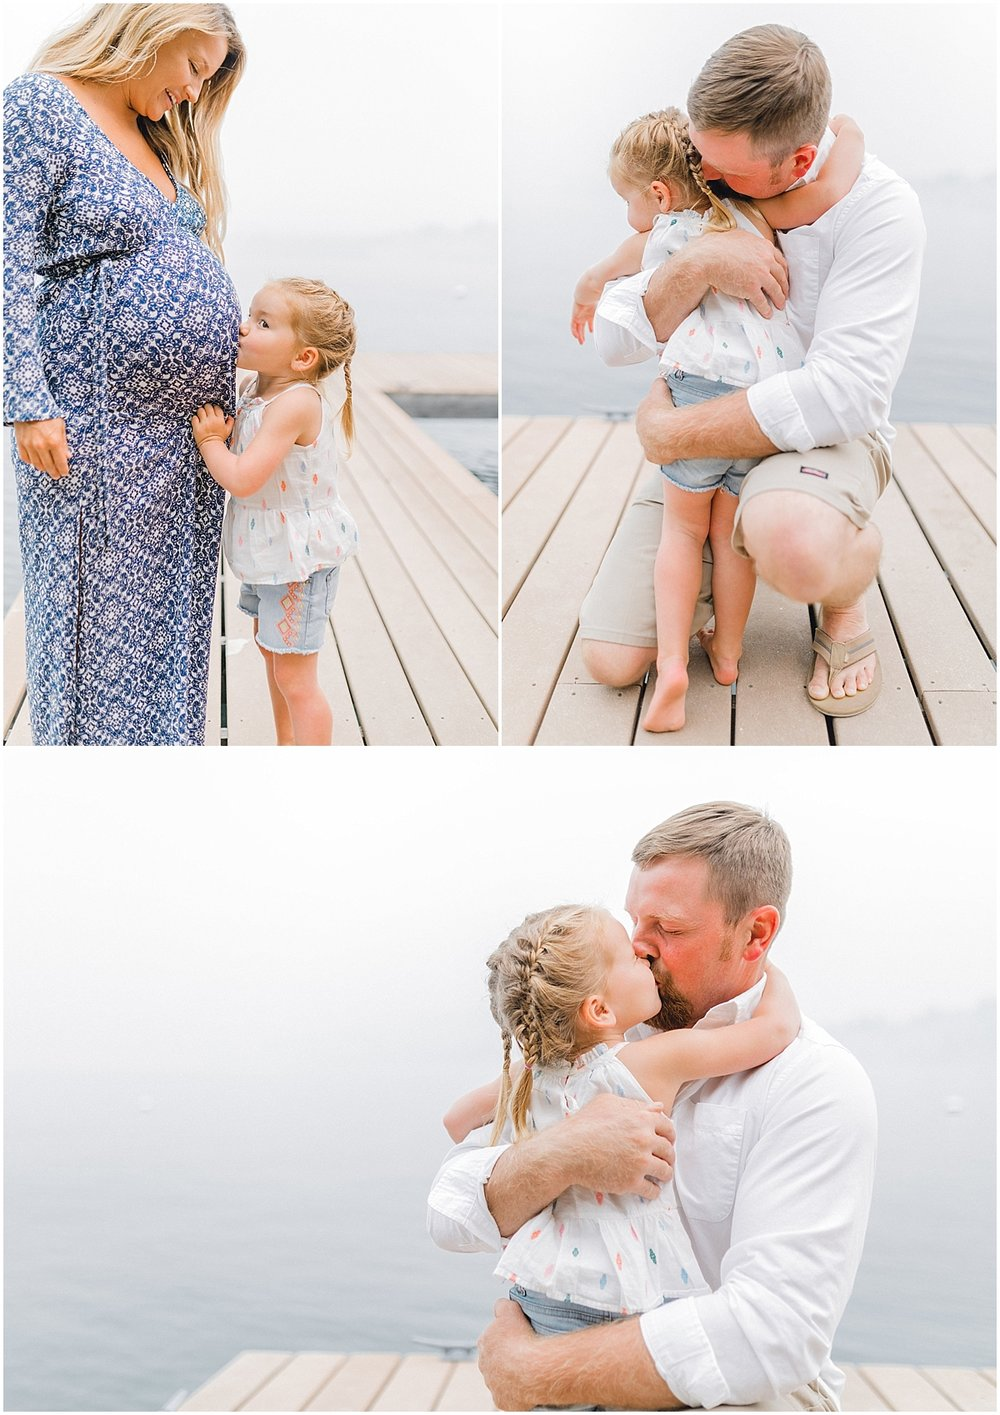 Emma Rose Company | PNW Family Portrait Photographer | Light and Airy Photography Style | What to Wear to Family Pictures | Kindred Presets | Lake Chelan Wedding Portrait Photographer_0089.jpg